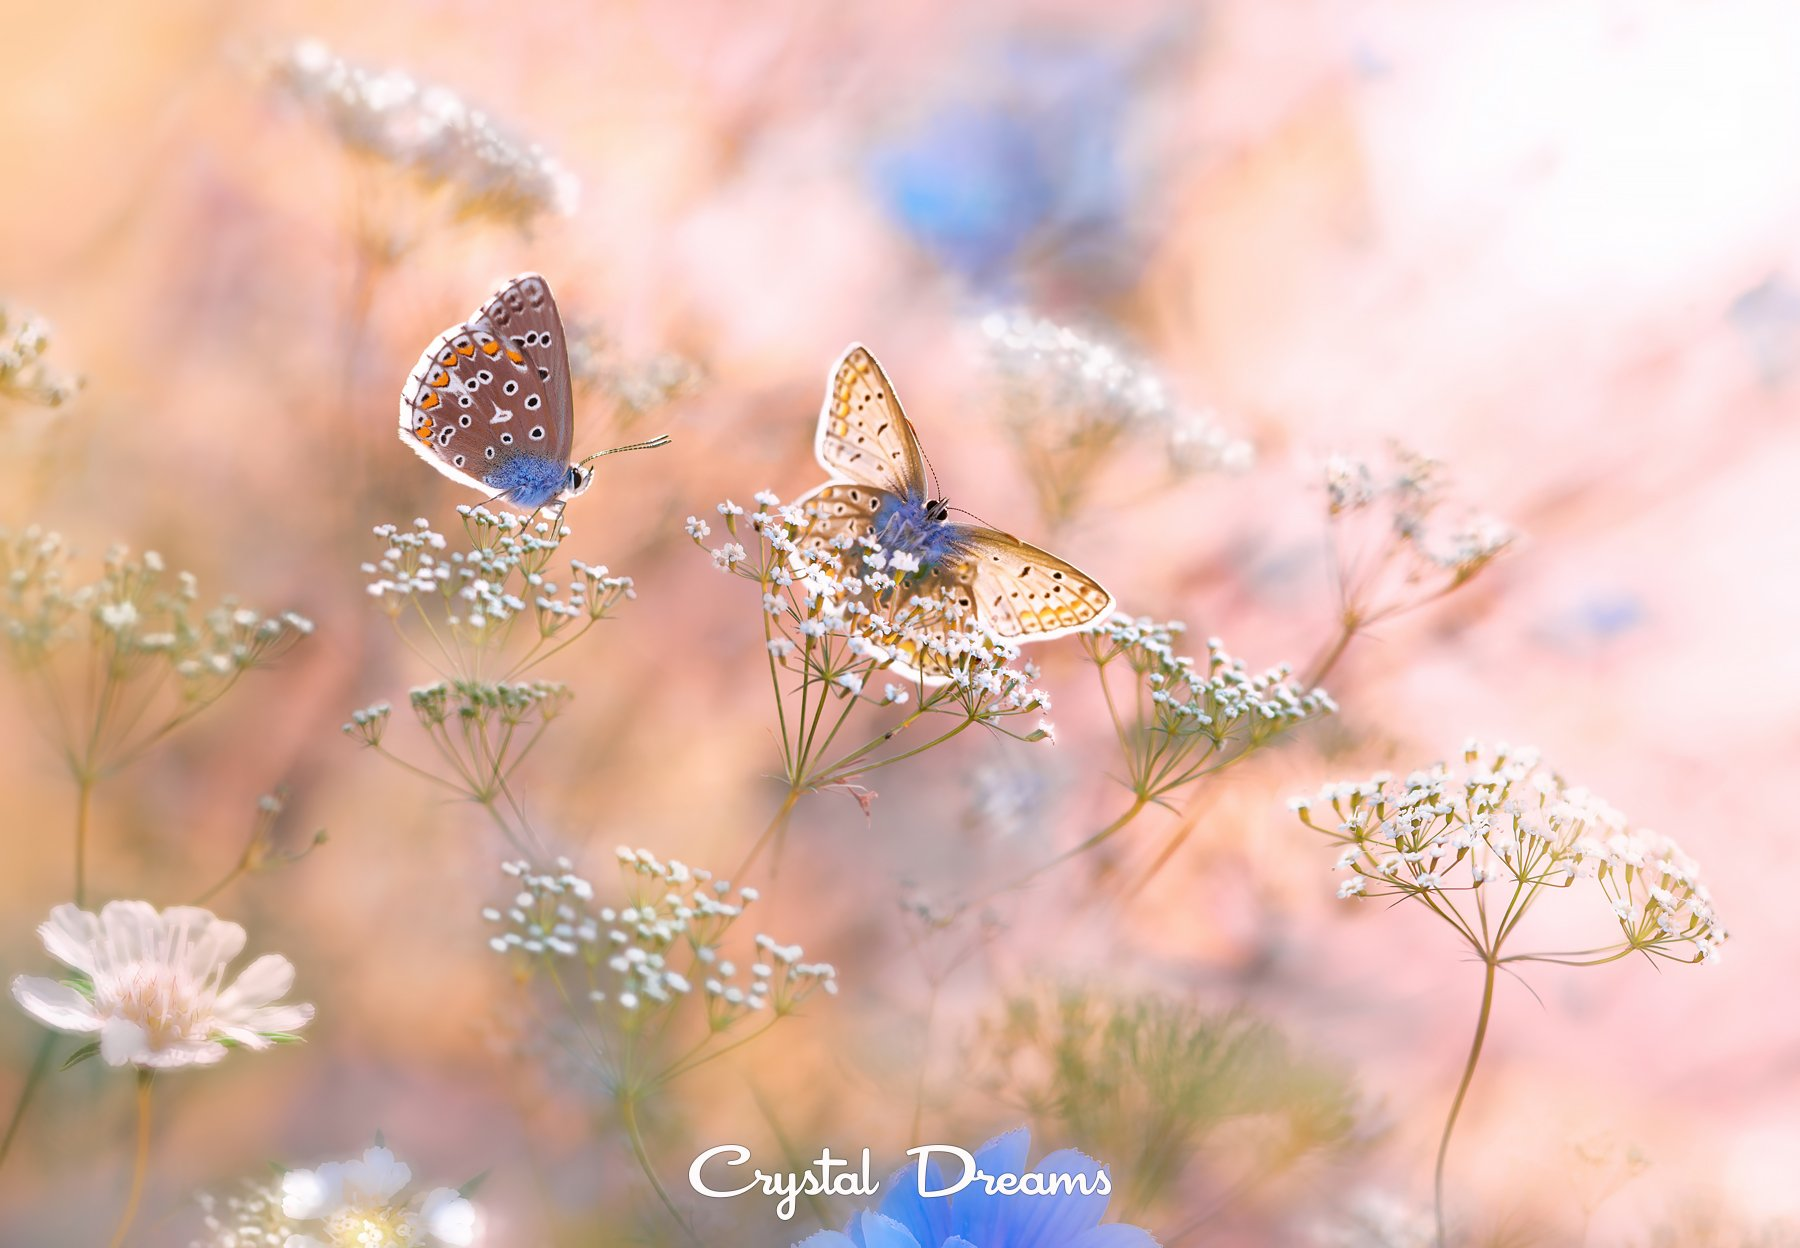 Butterfly, Color, Crystal Dreams, Flower, Macro, Meadow, Nature, Summer, Крылова Татьяна